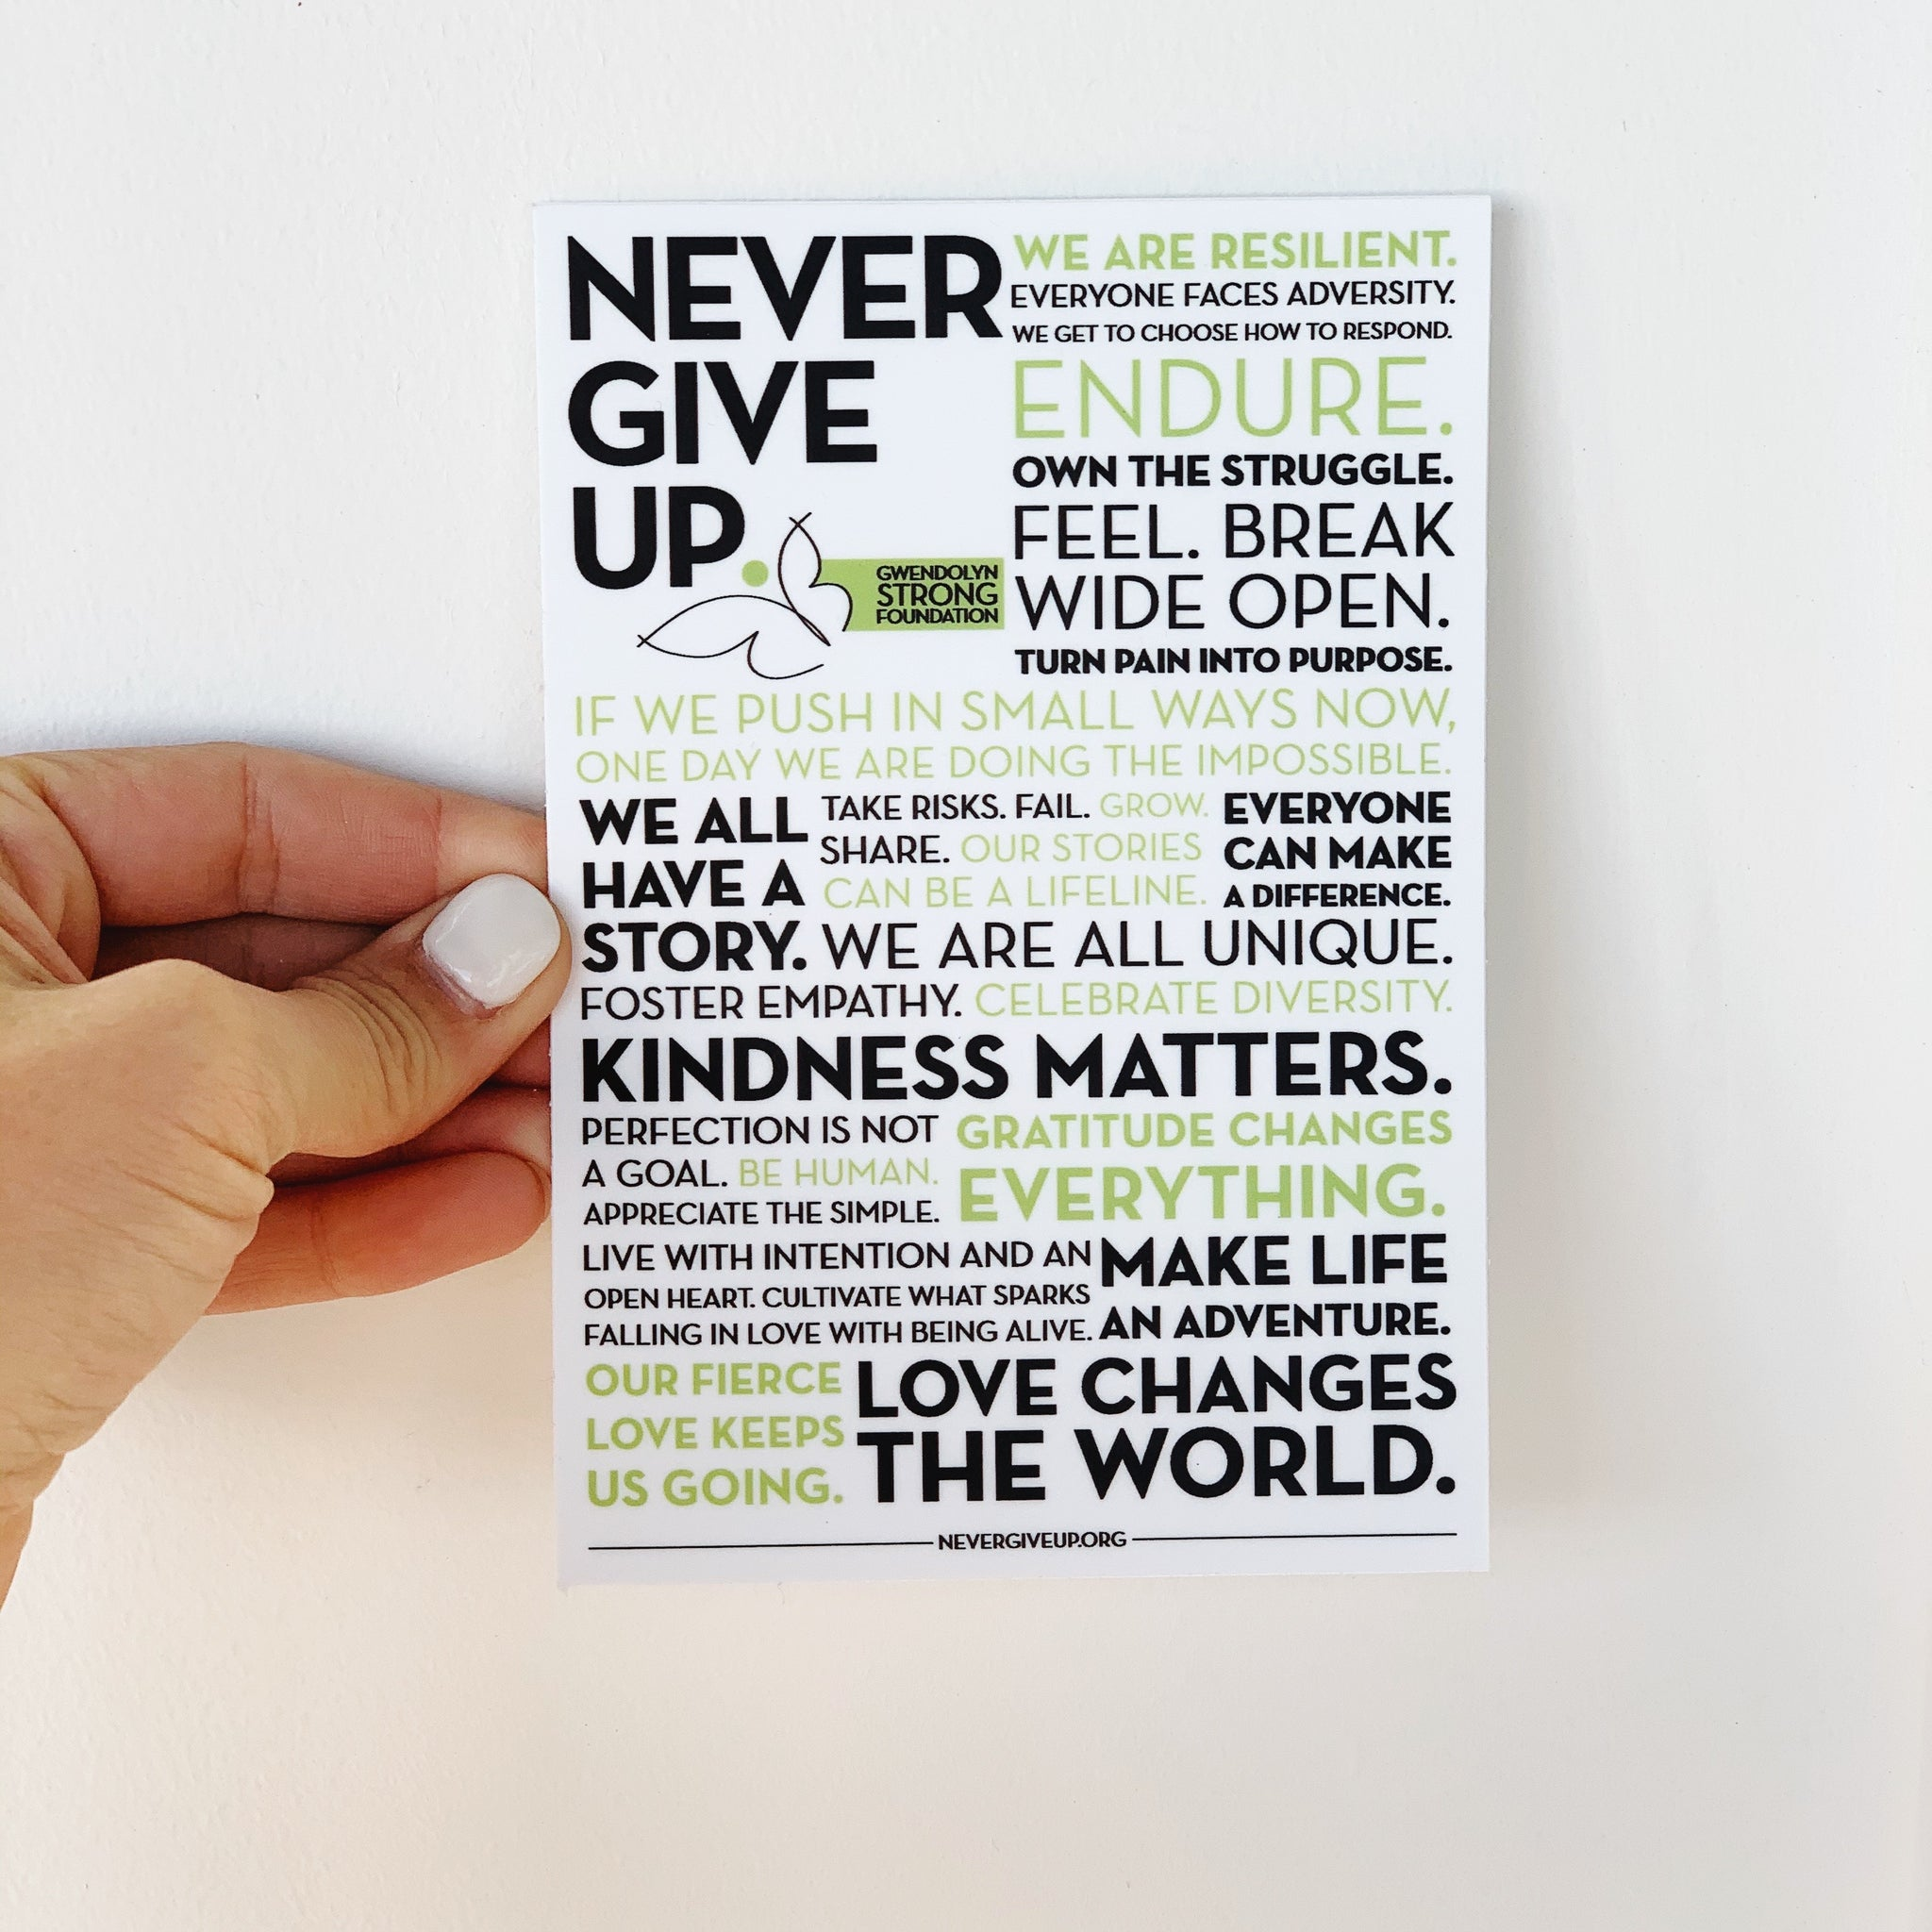 NEVER GIVE UP. MANTRA STICKER